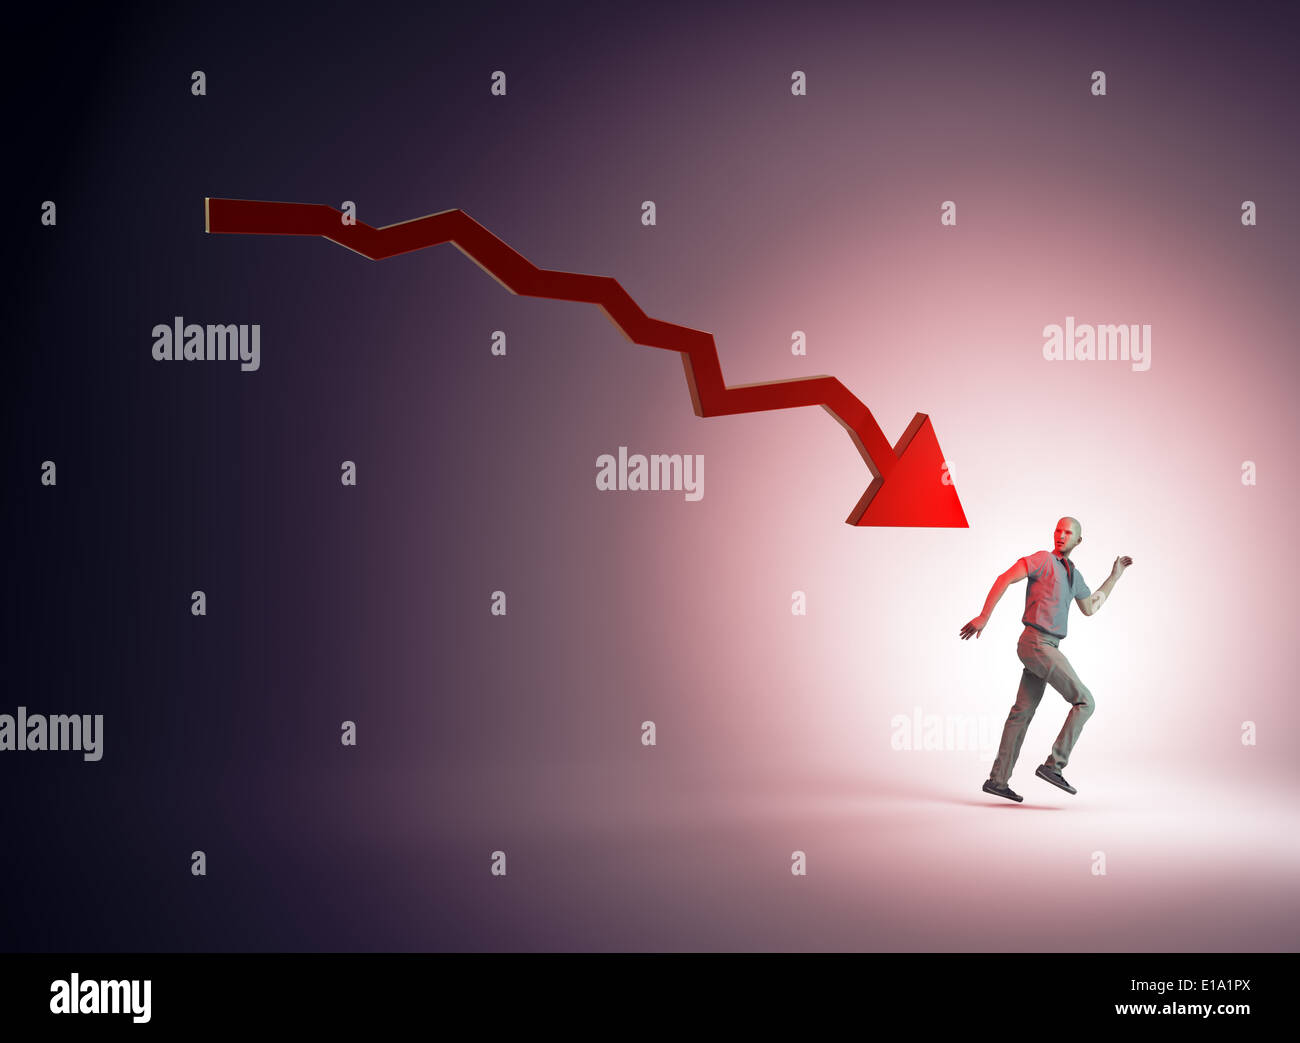 Man running away from a dropping chart - Stock Image